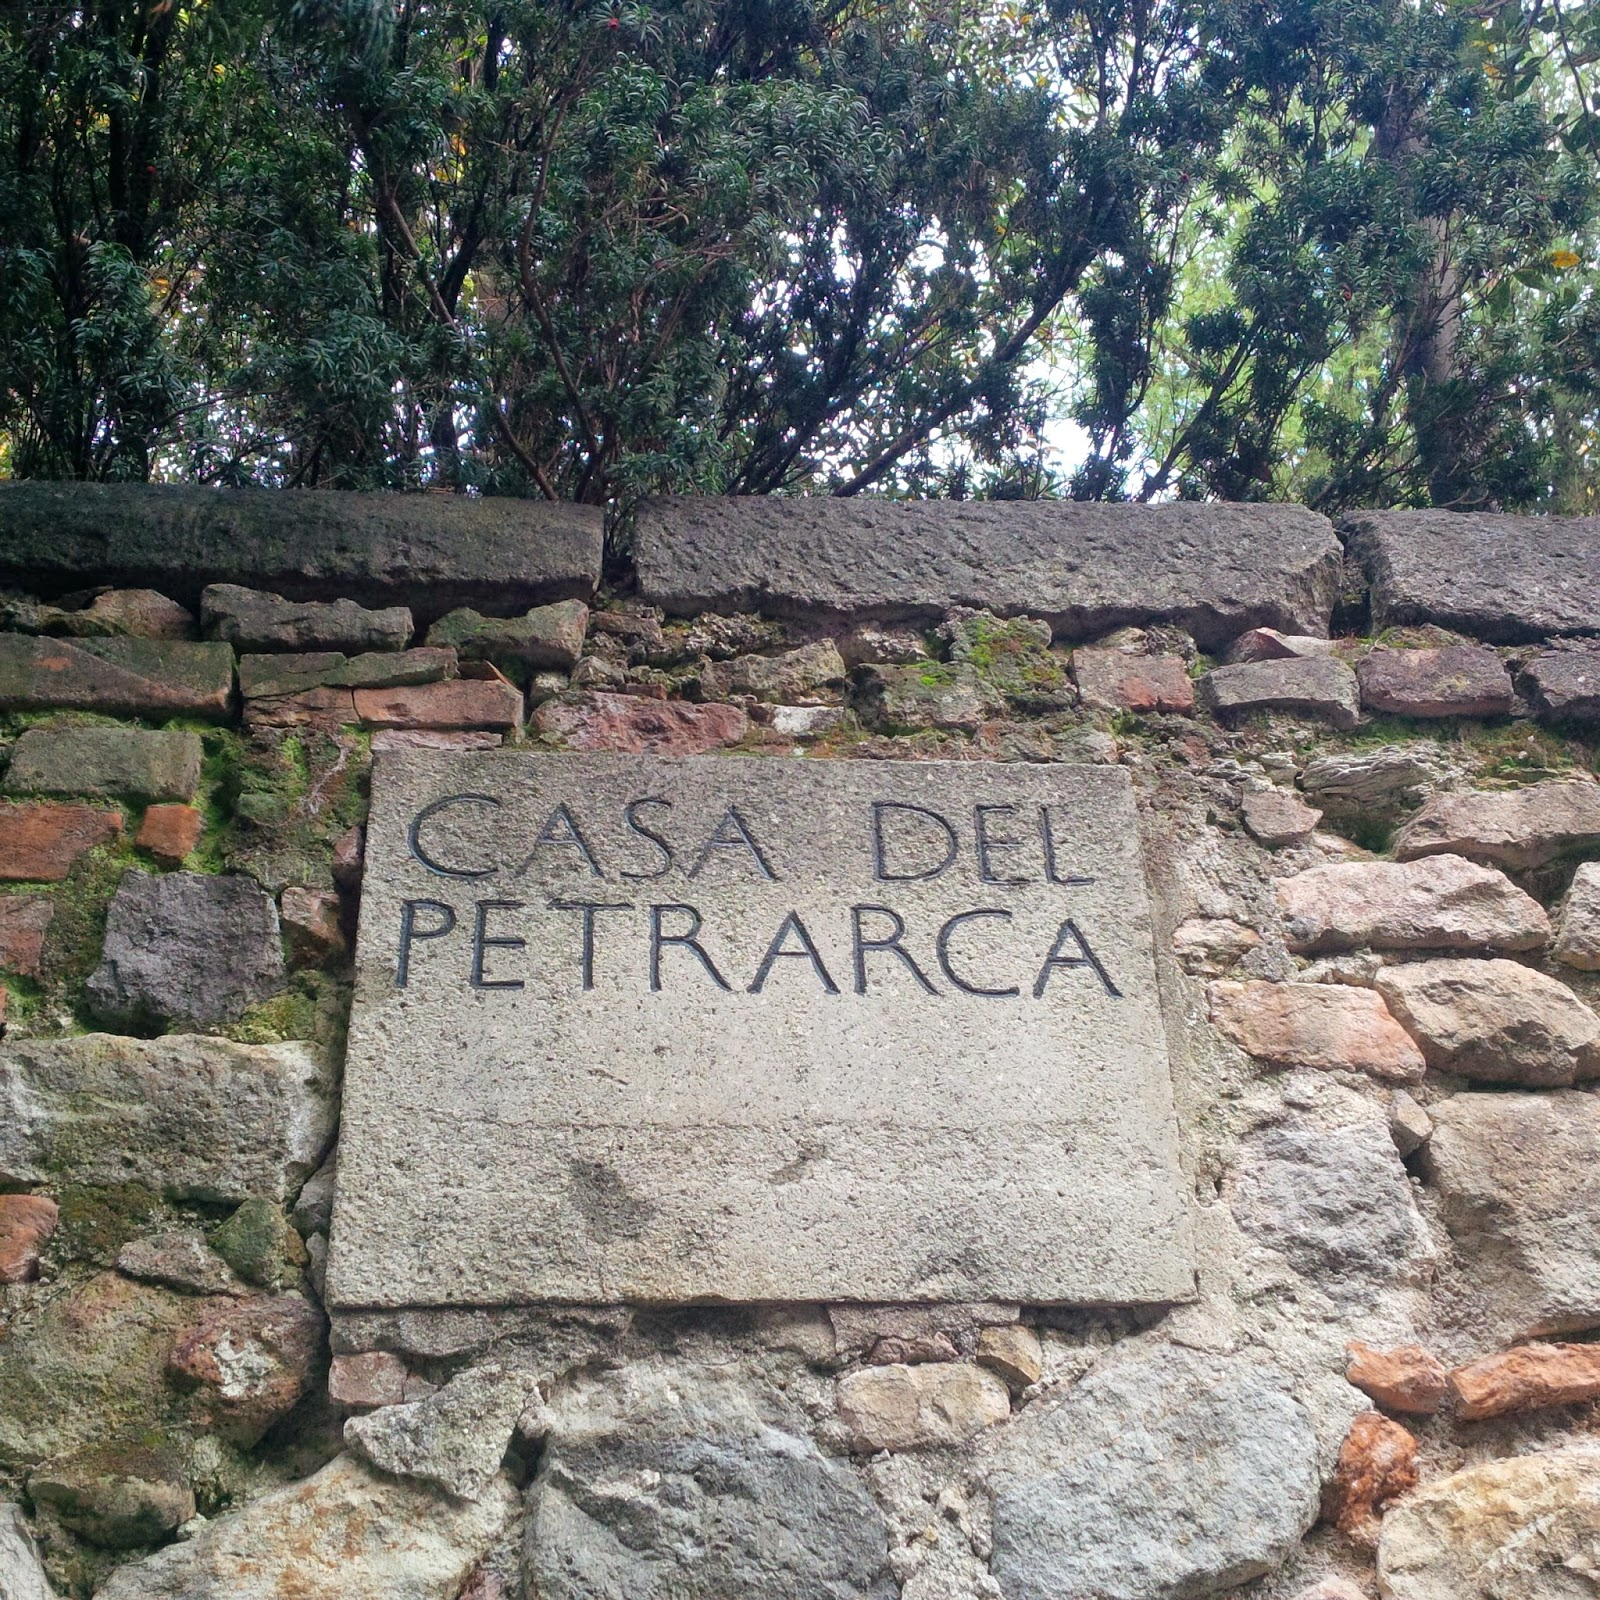 The sign on Casa del Petrarca in Arqua Petrarca